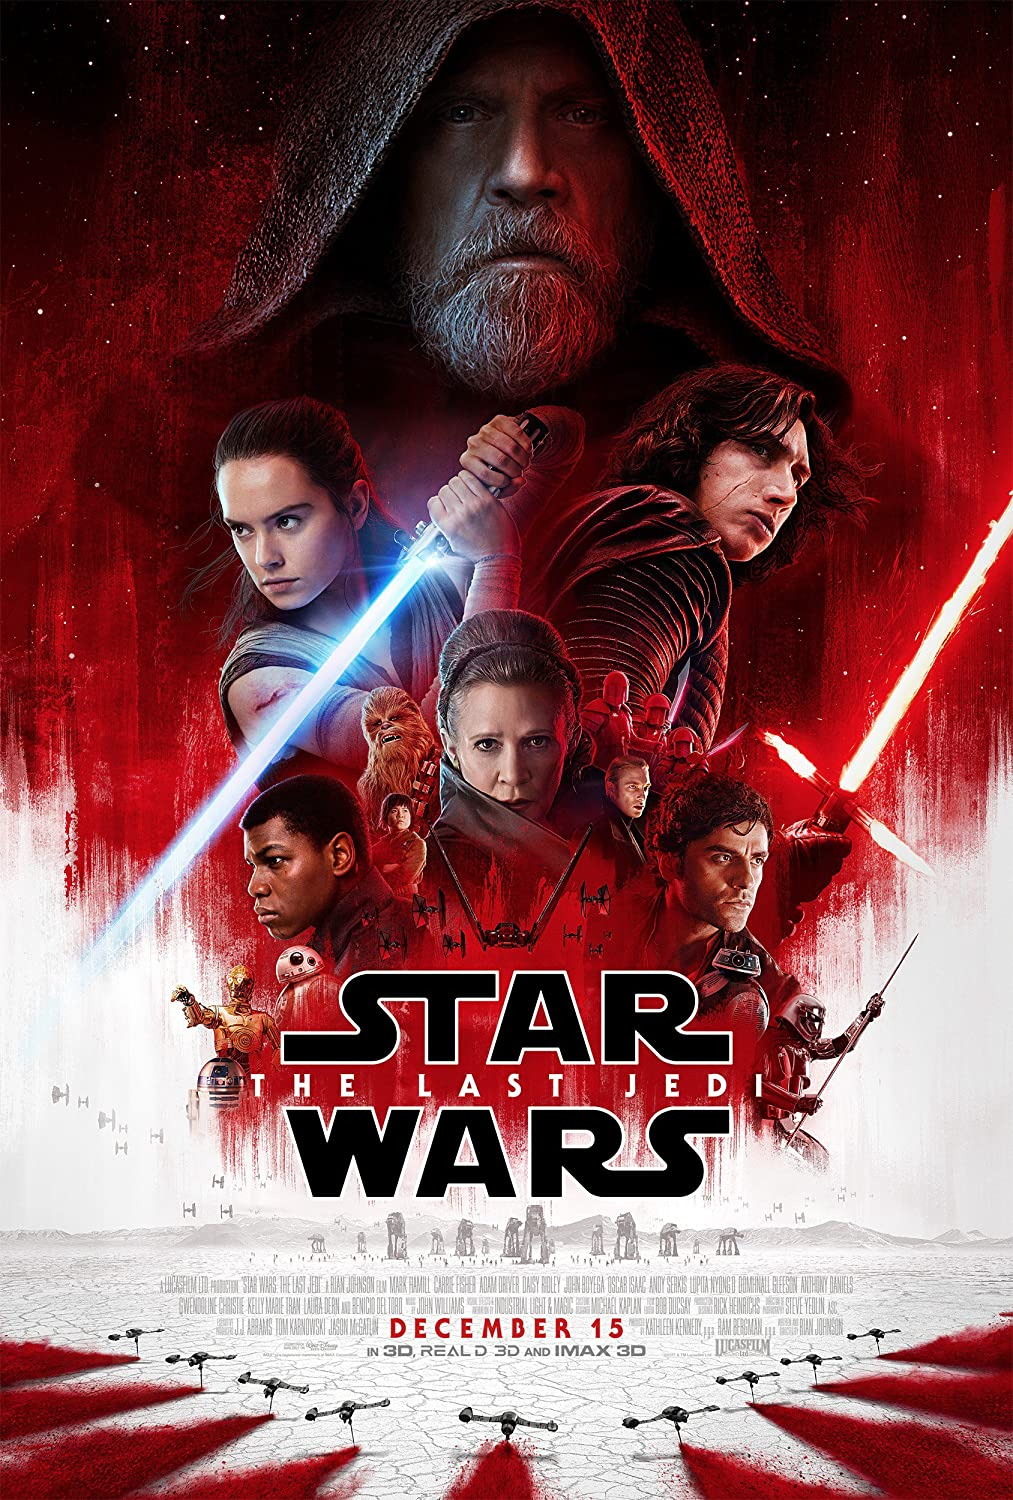 Star Wars The Last Jedi Movie Poster Limited Print Photo Daisy Ridley, John Boyega, Mark Hamill Size 24x36 #2